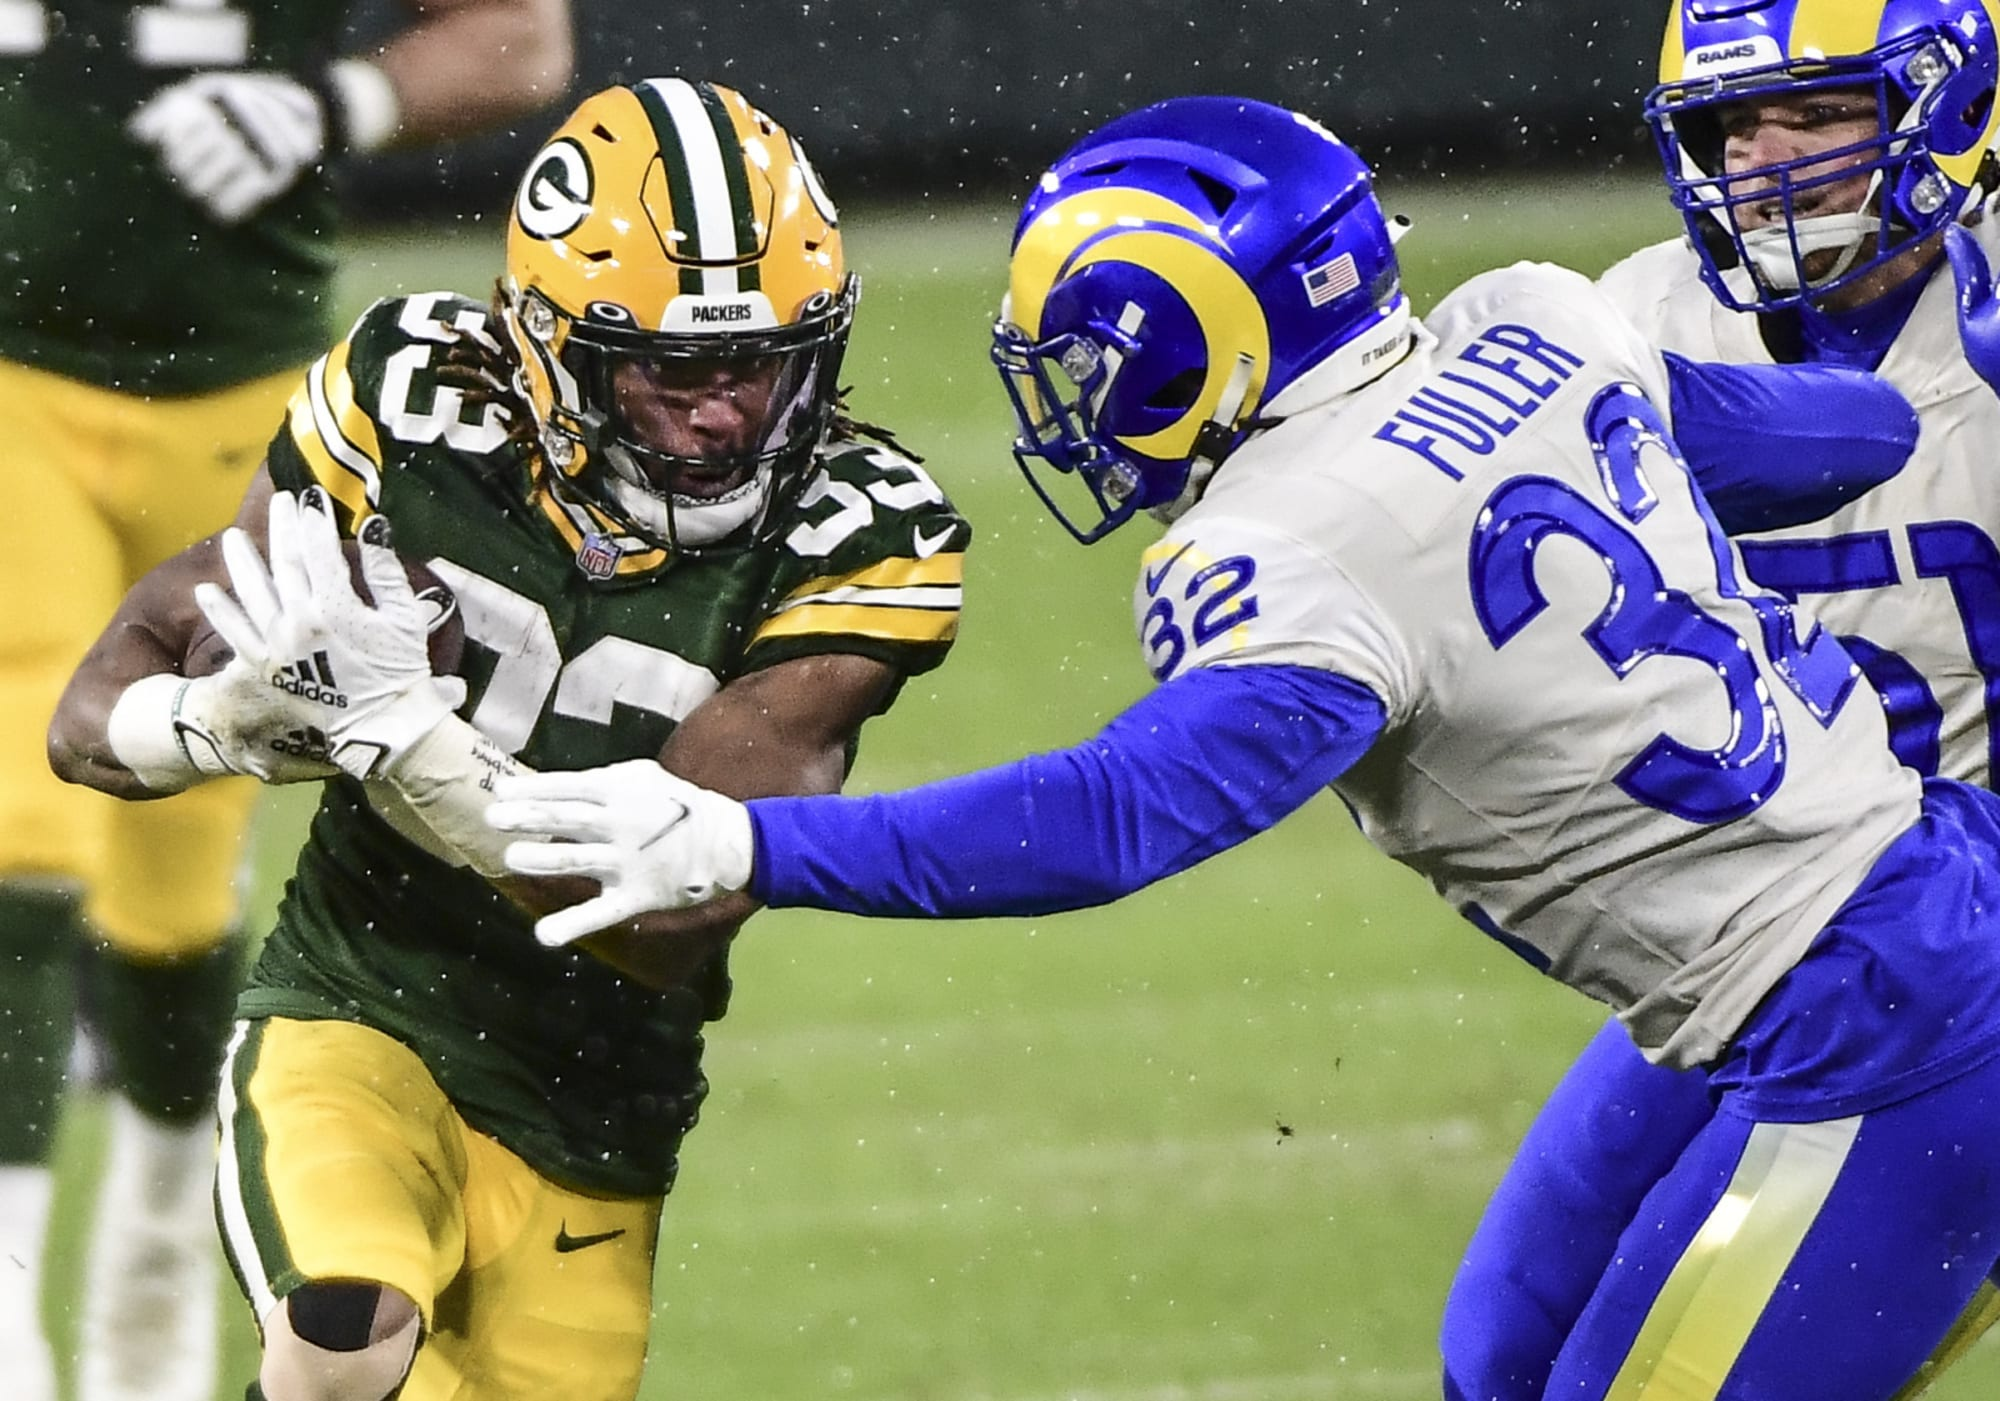 Packers: Complete list of free agents in 2021 offseason